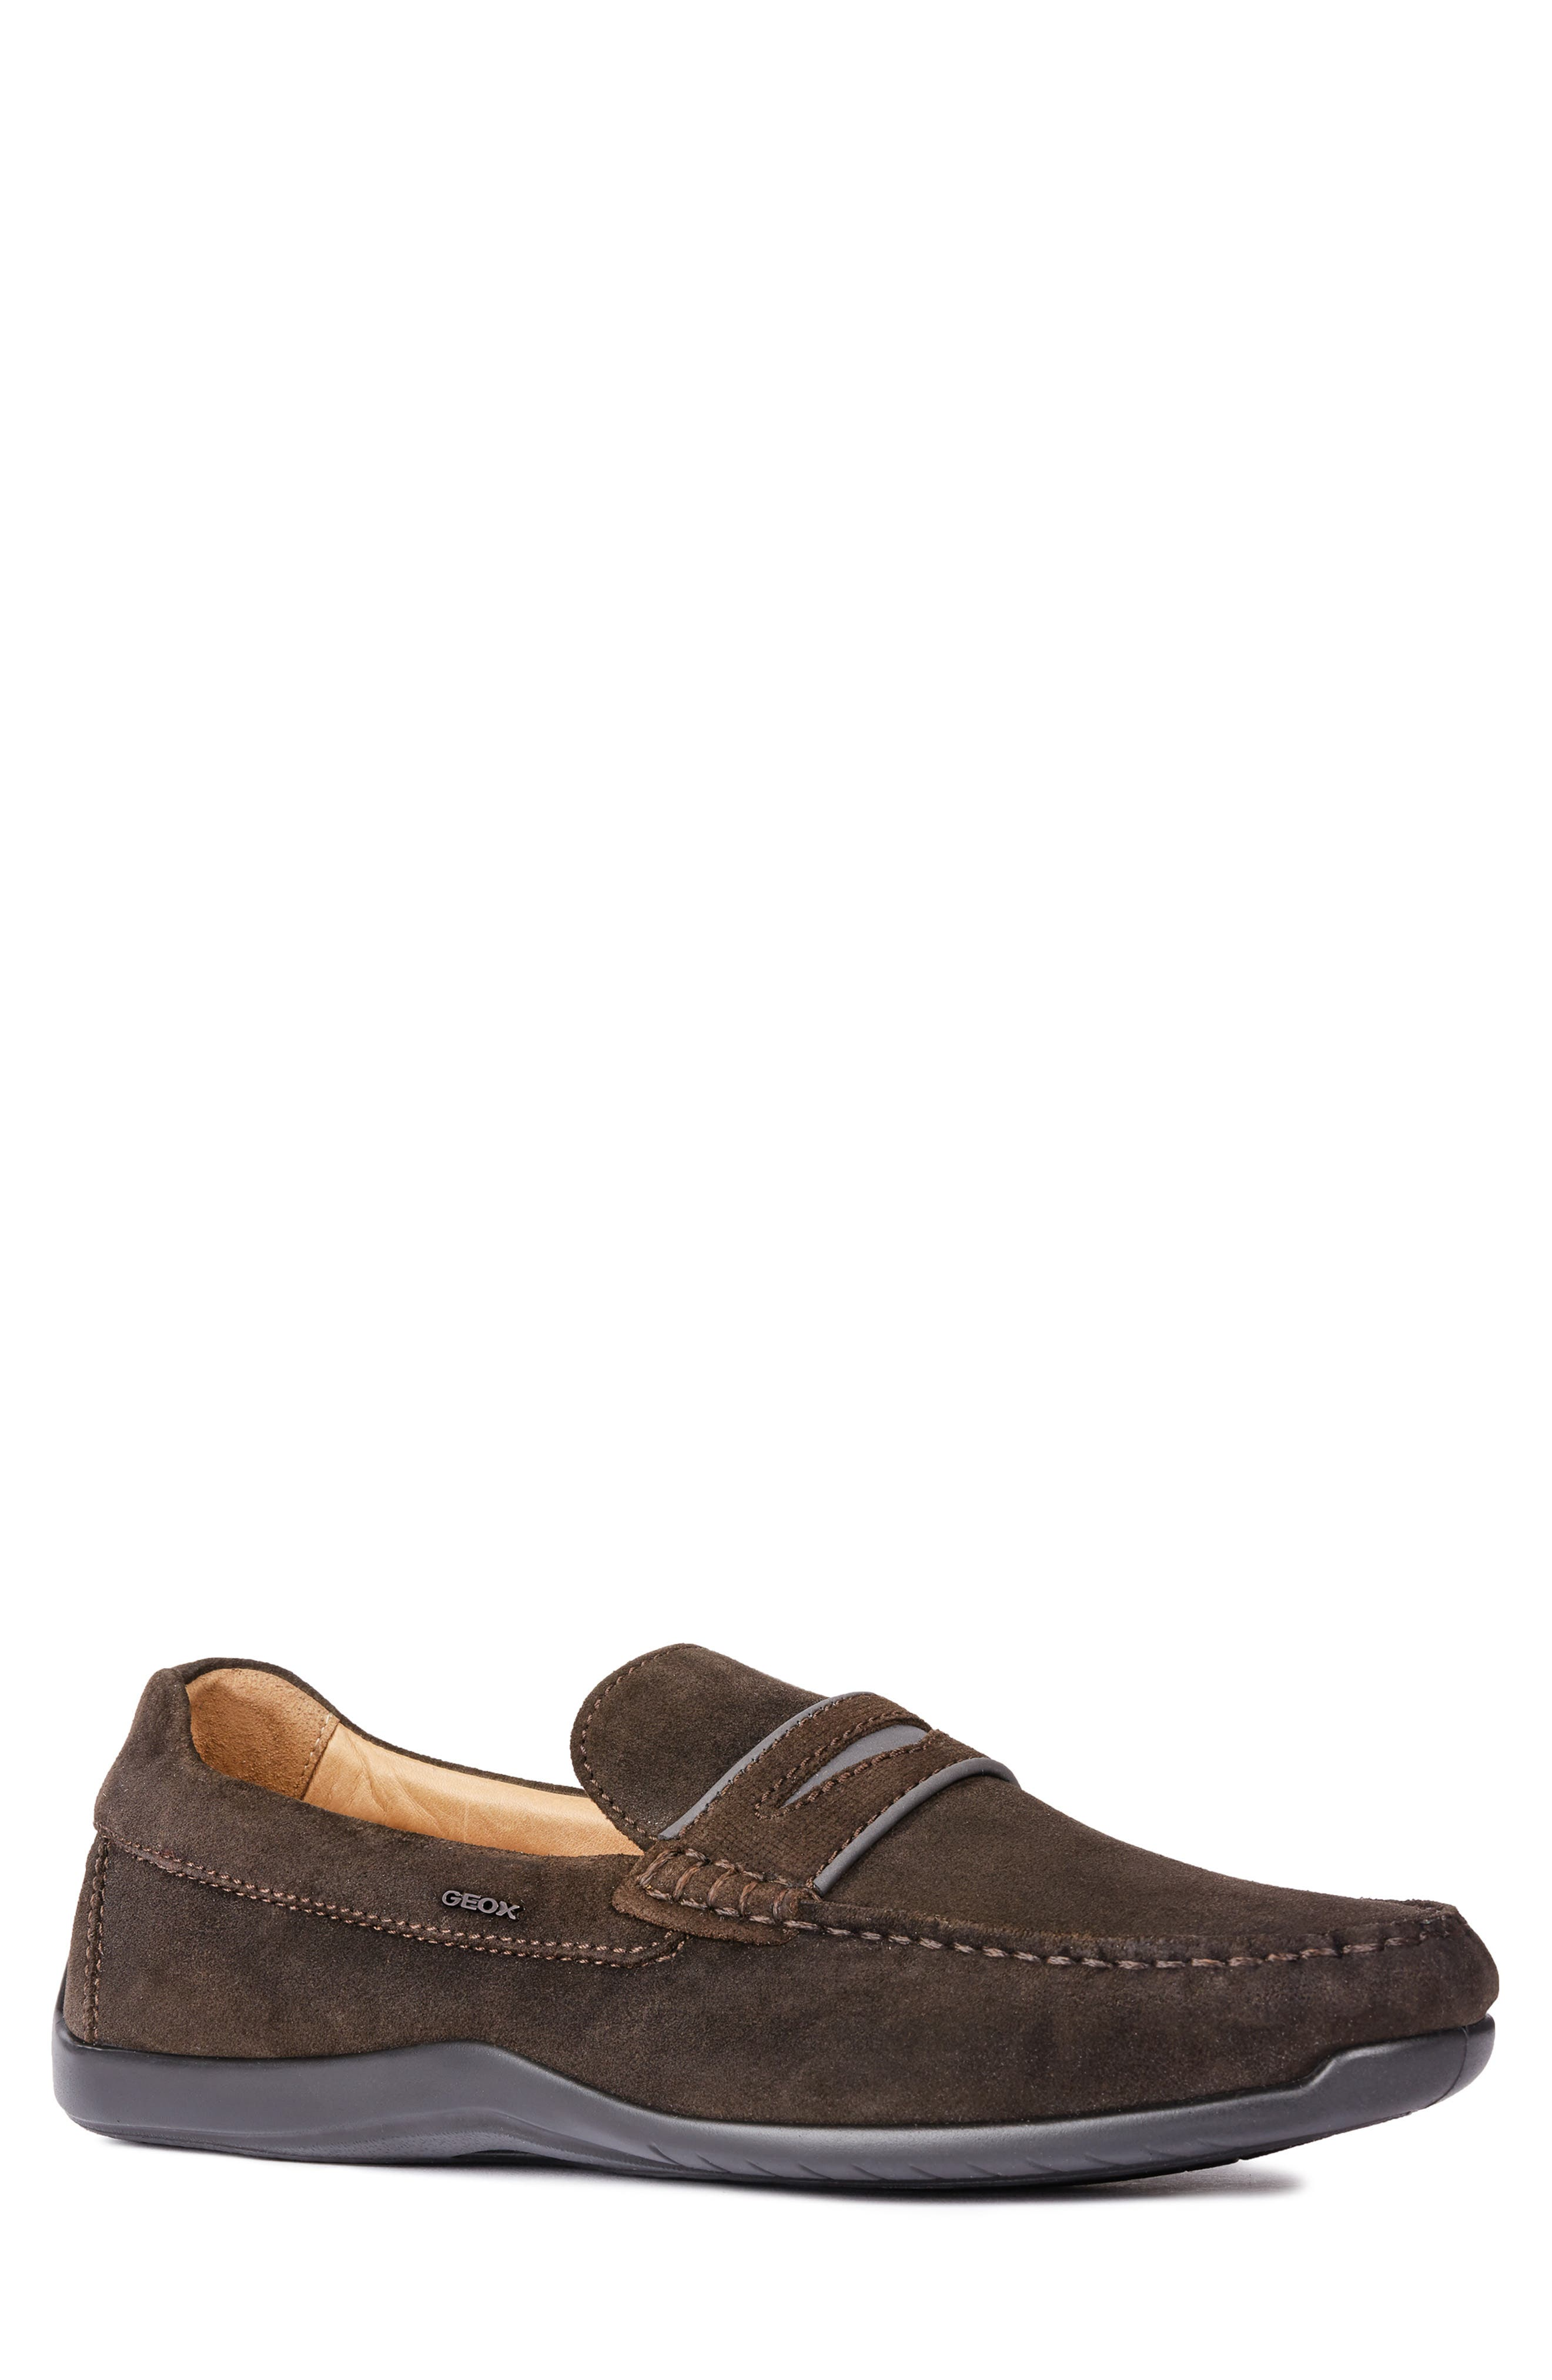 GEOX Xense Mox 15 Penny Loafer, Main, color, 248